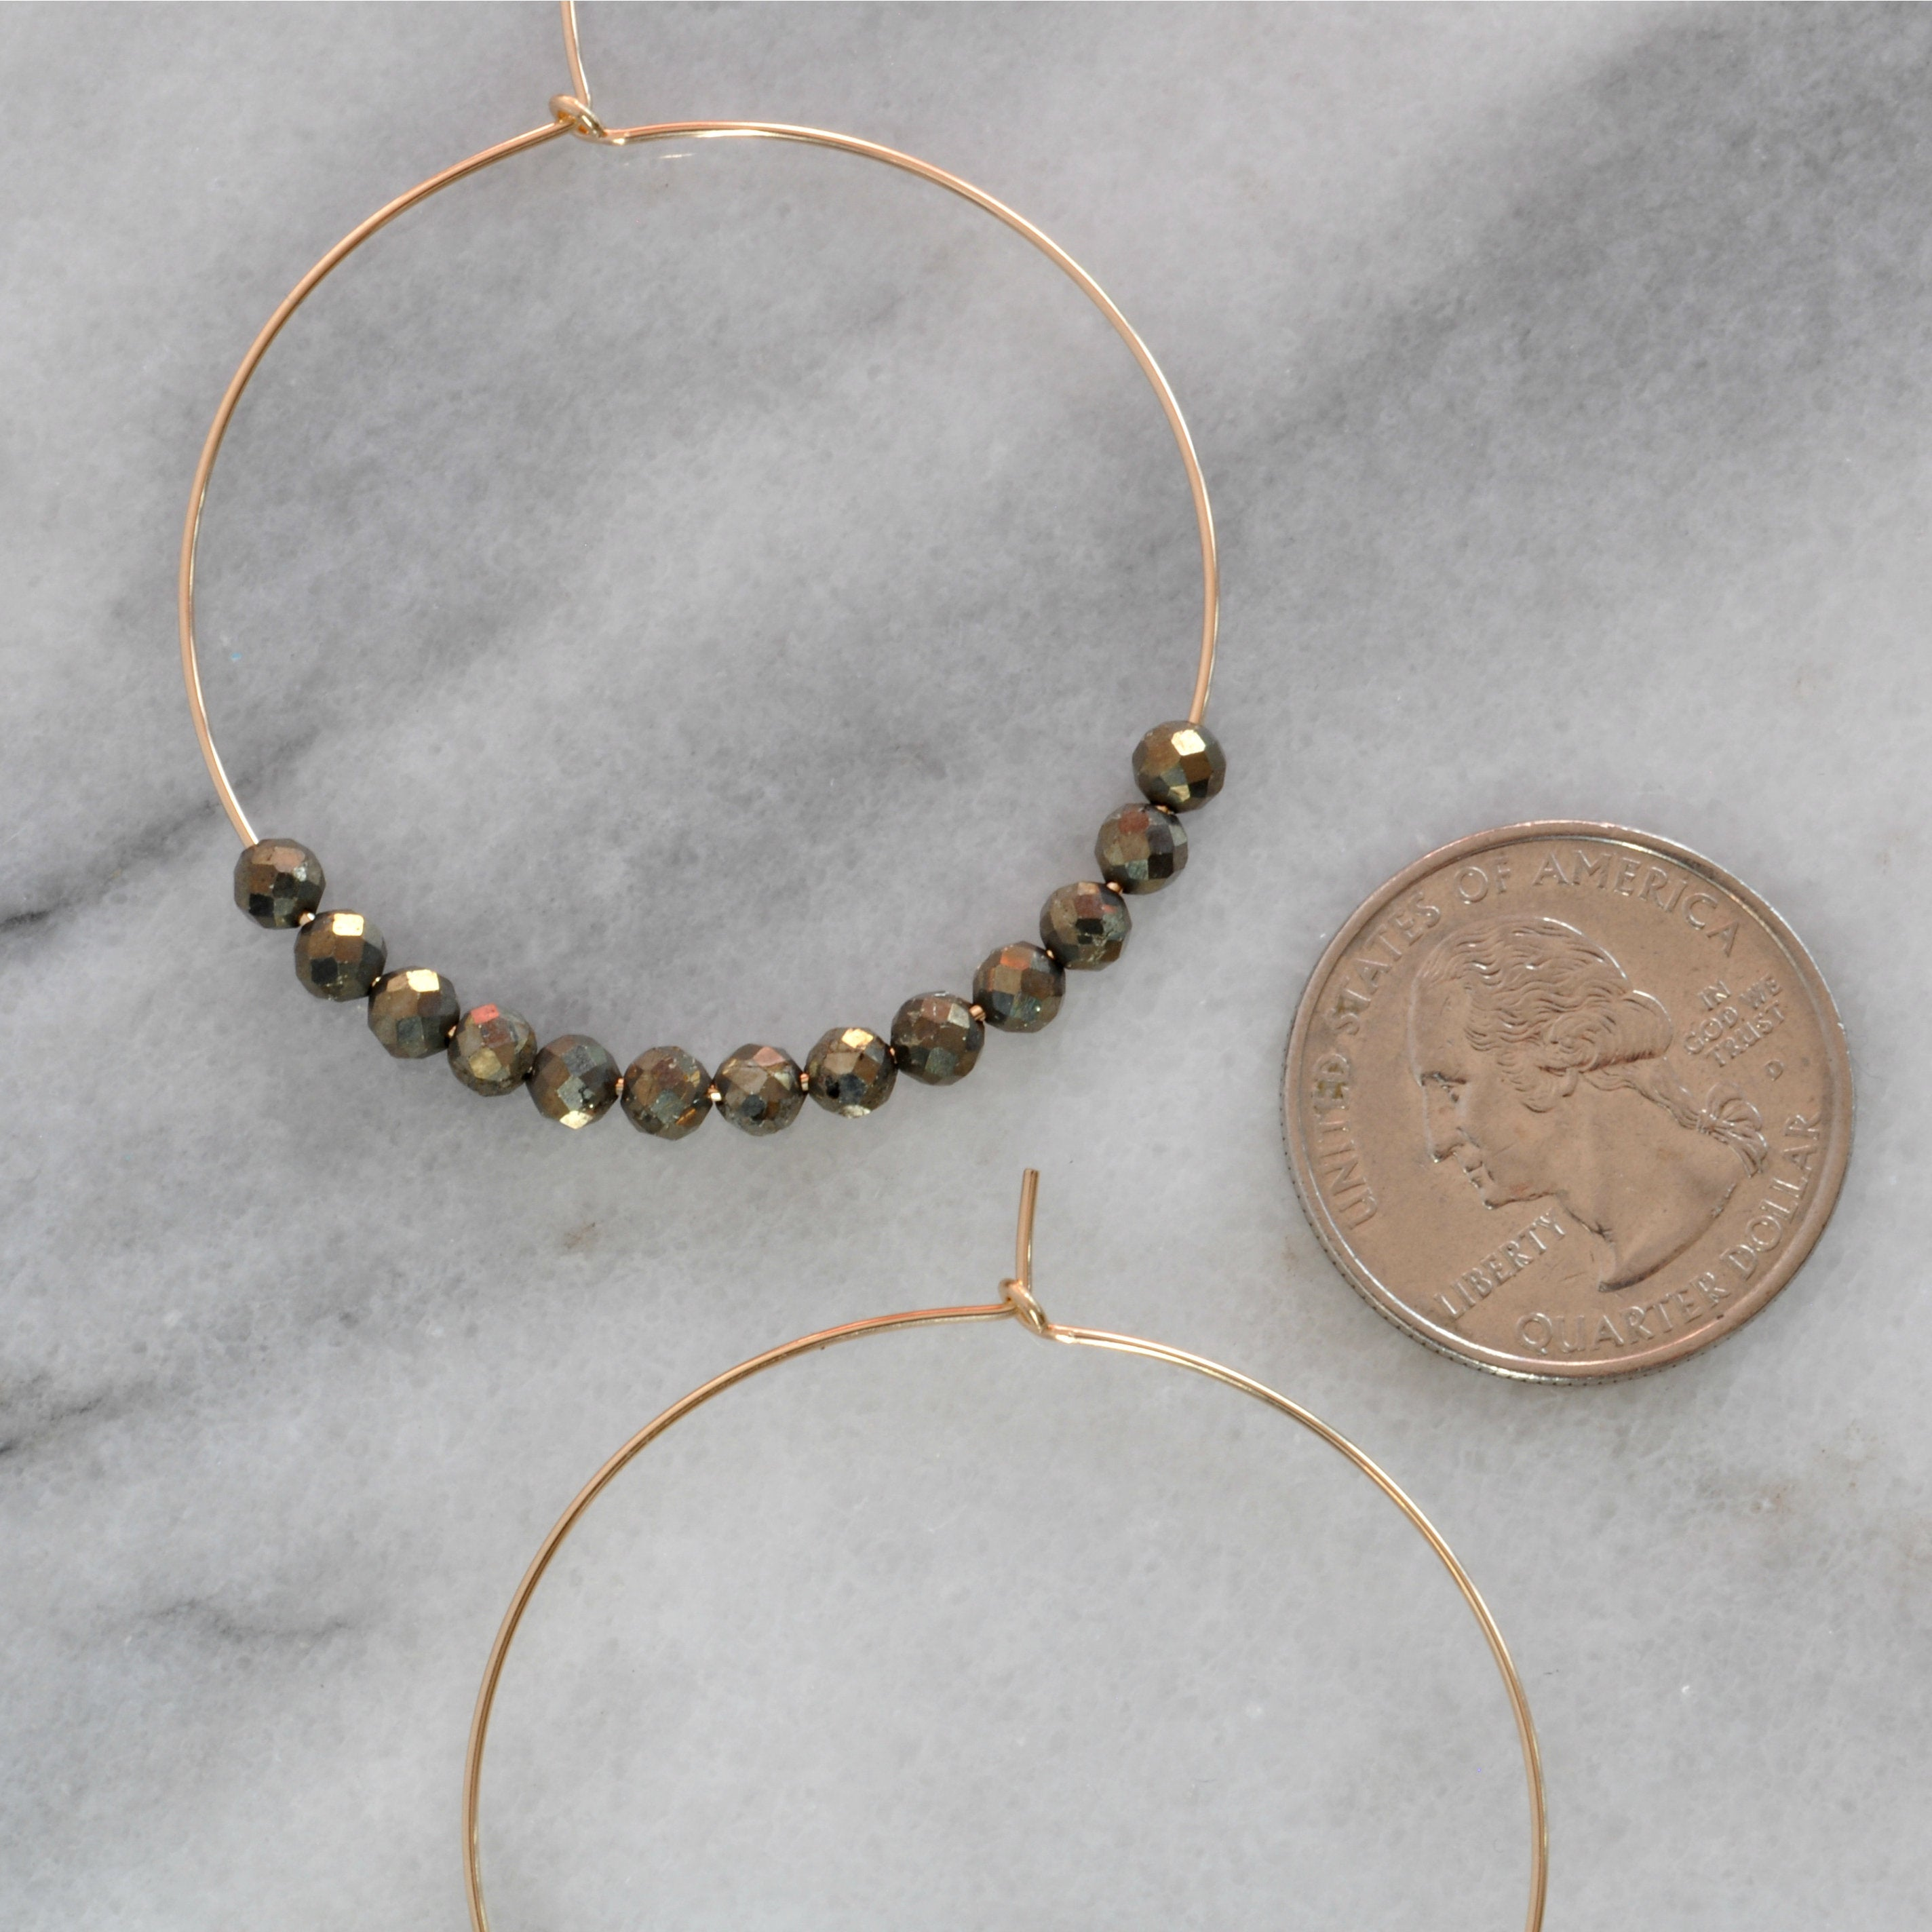 Libby & Smee Gemstone Hoop Earrings in Pyrite, close Up